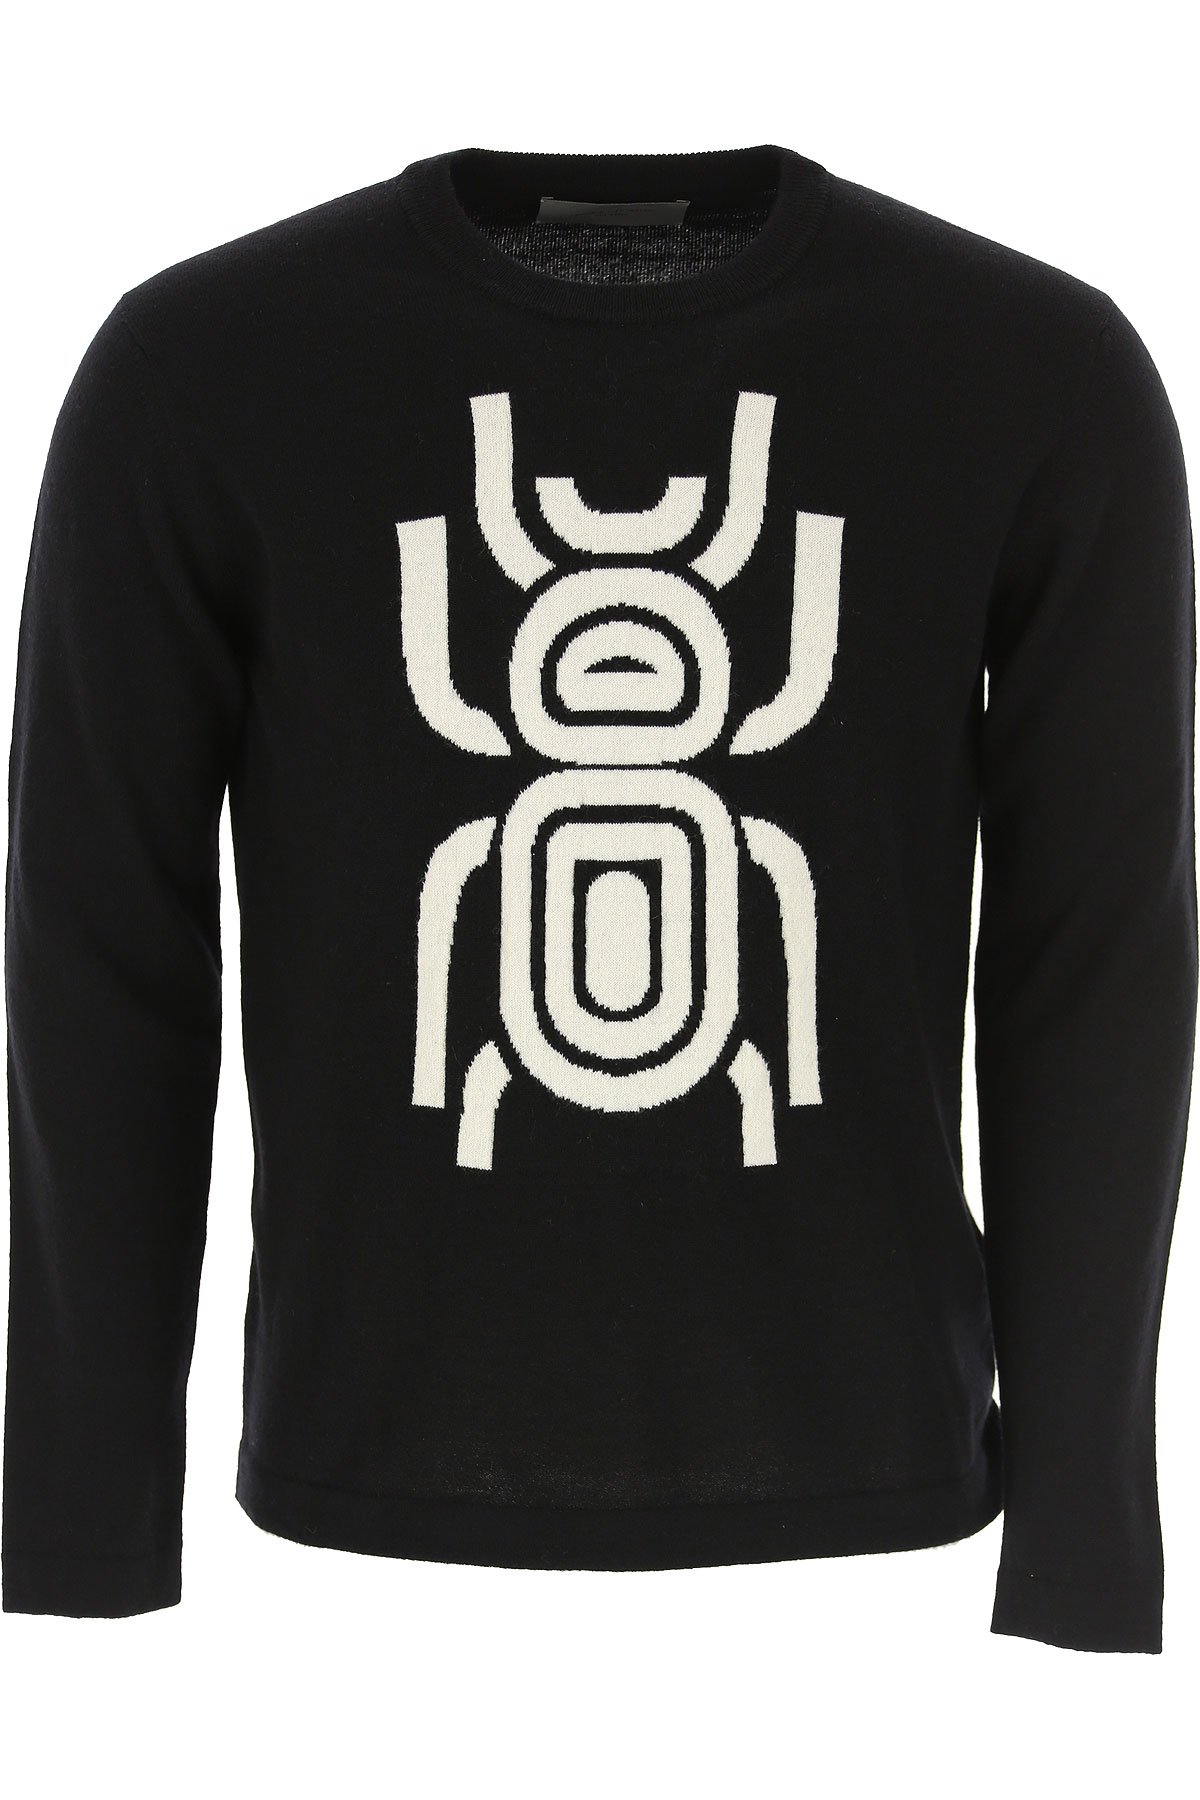 Frankie Morello Sweater for Men Jumper On Sale, Black, Wool, 2019, L M XL